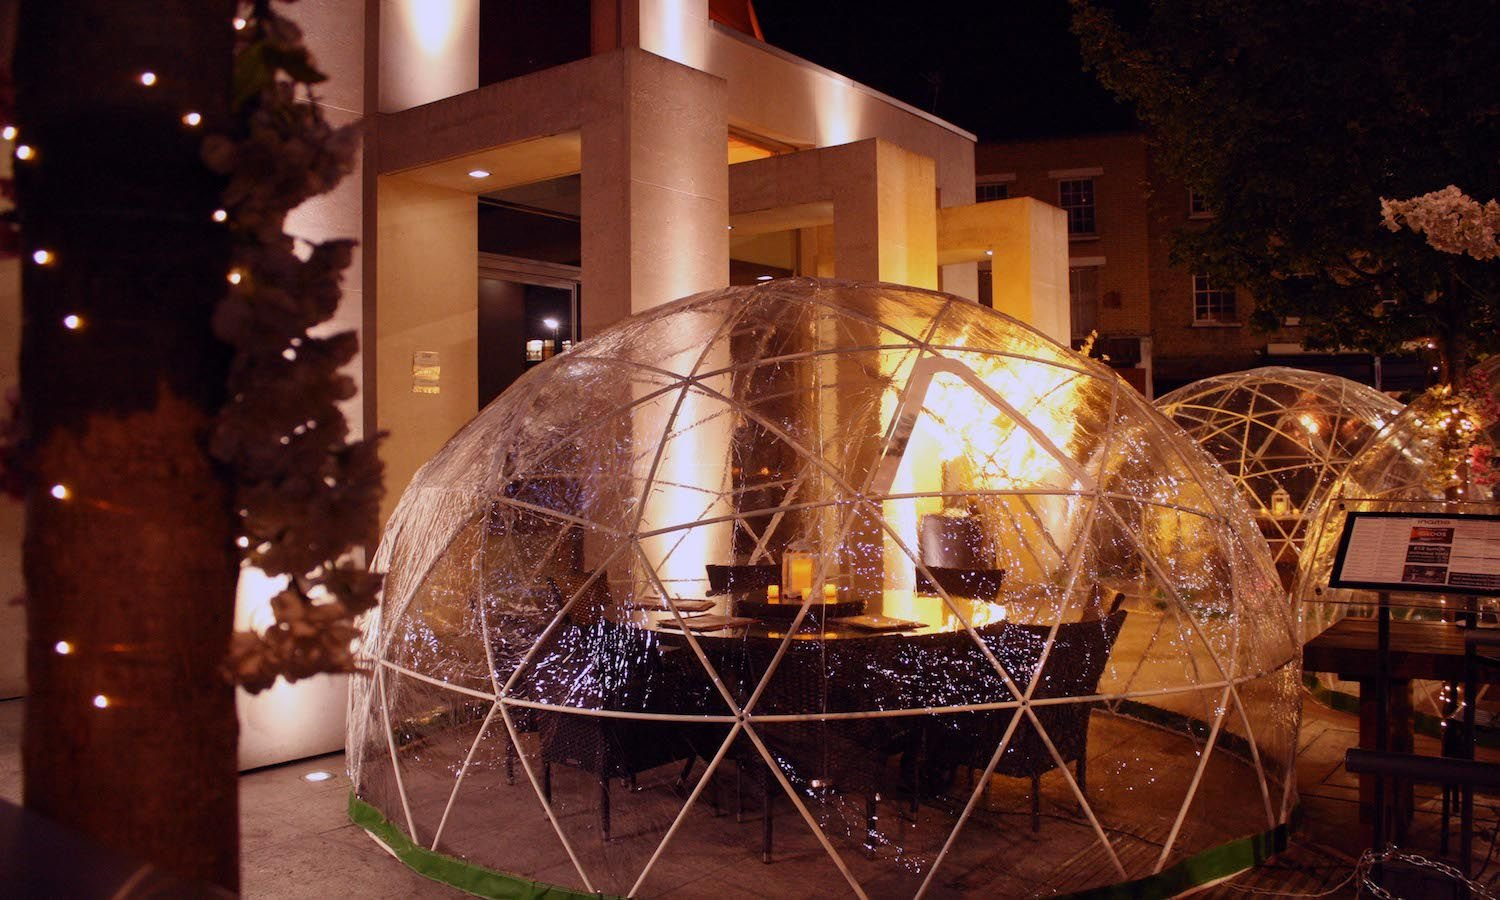 62% off bottomless food in an outdoor igloo at Inamo